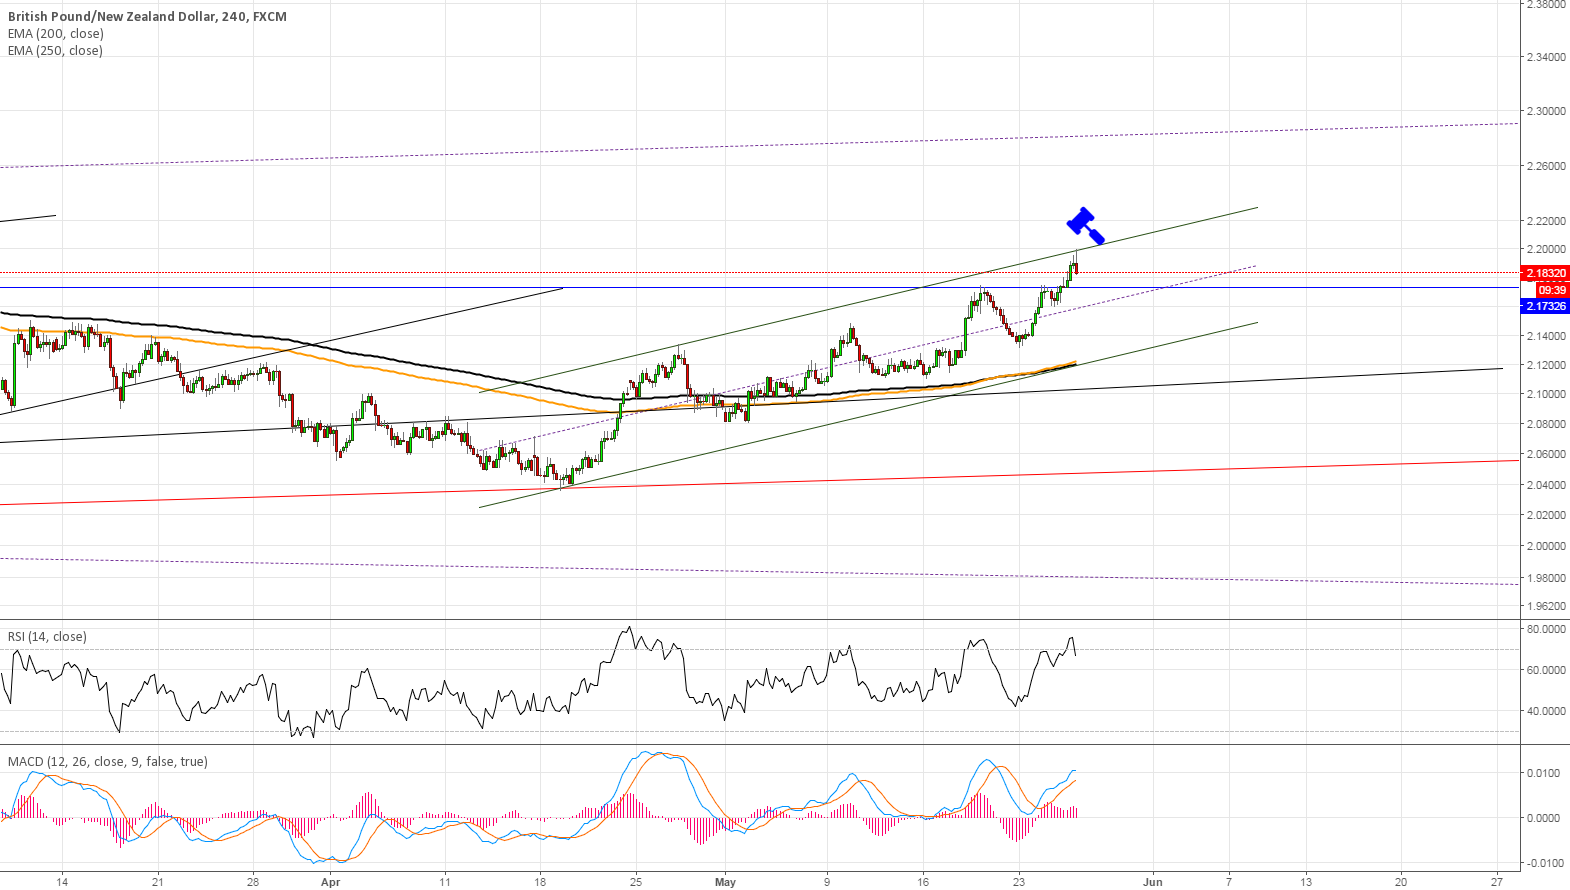 #GBPNZD Short, I'm already in.